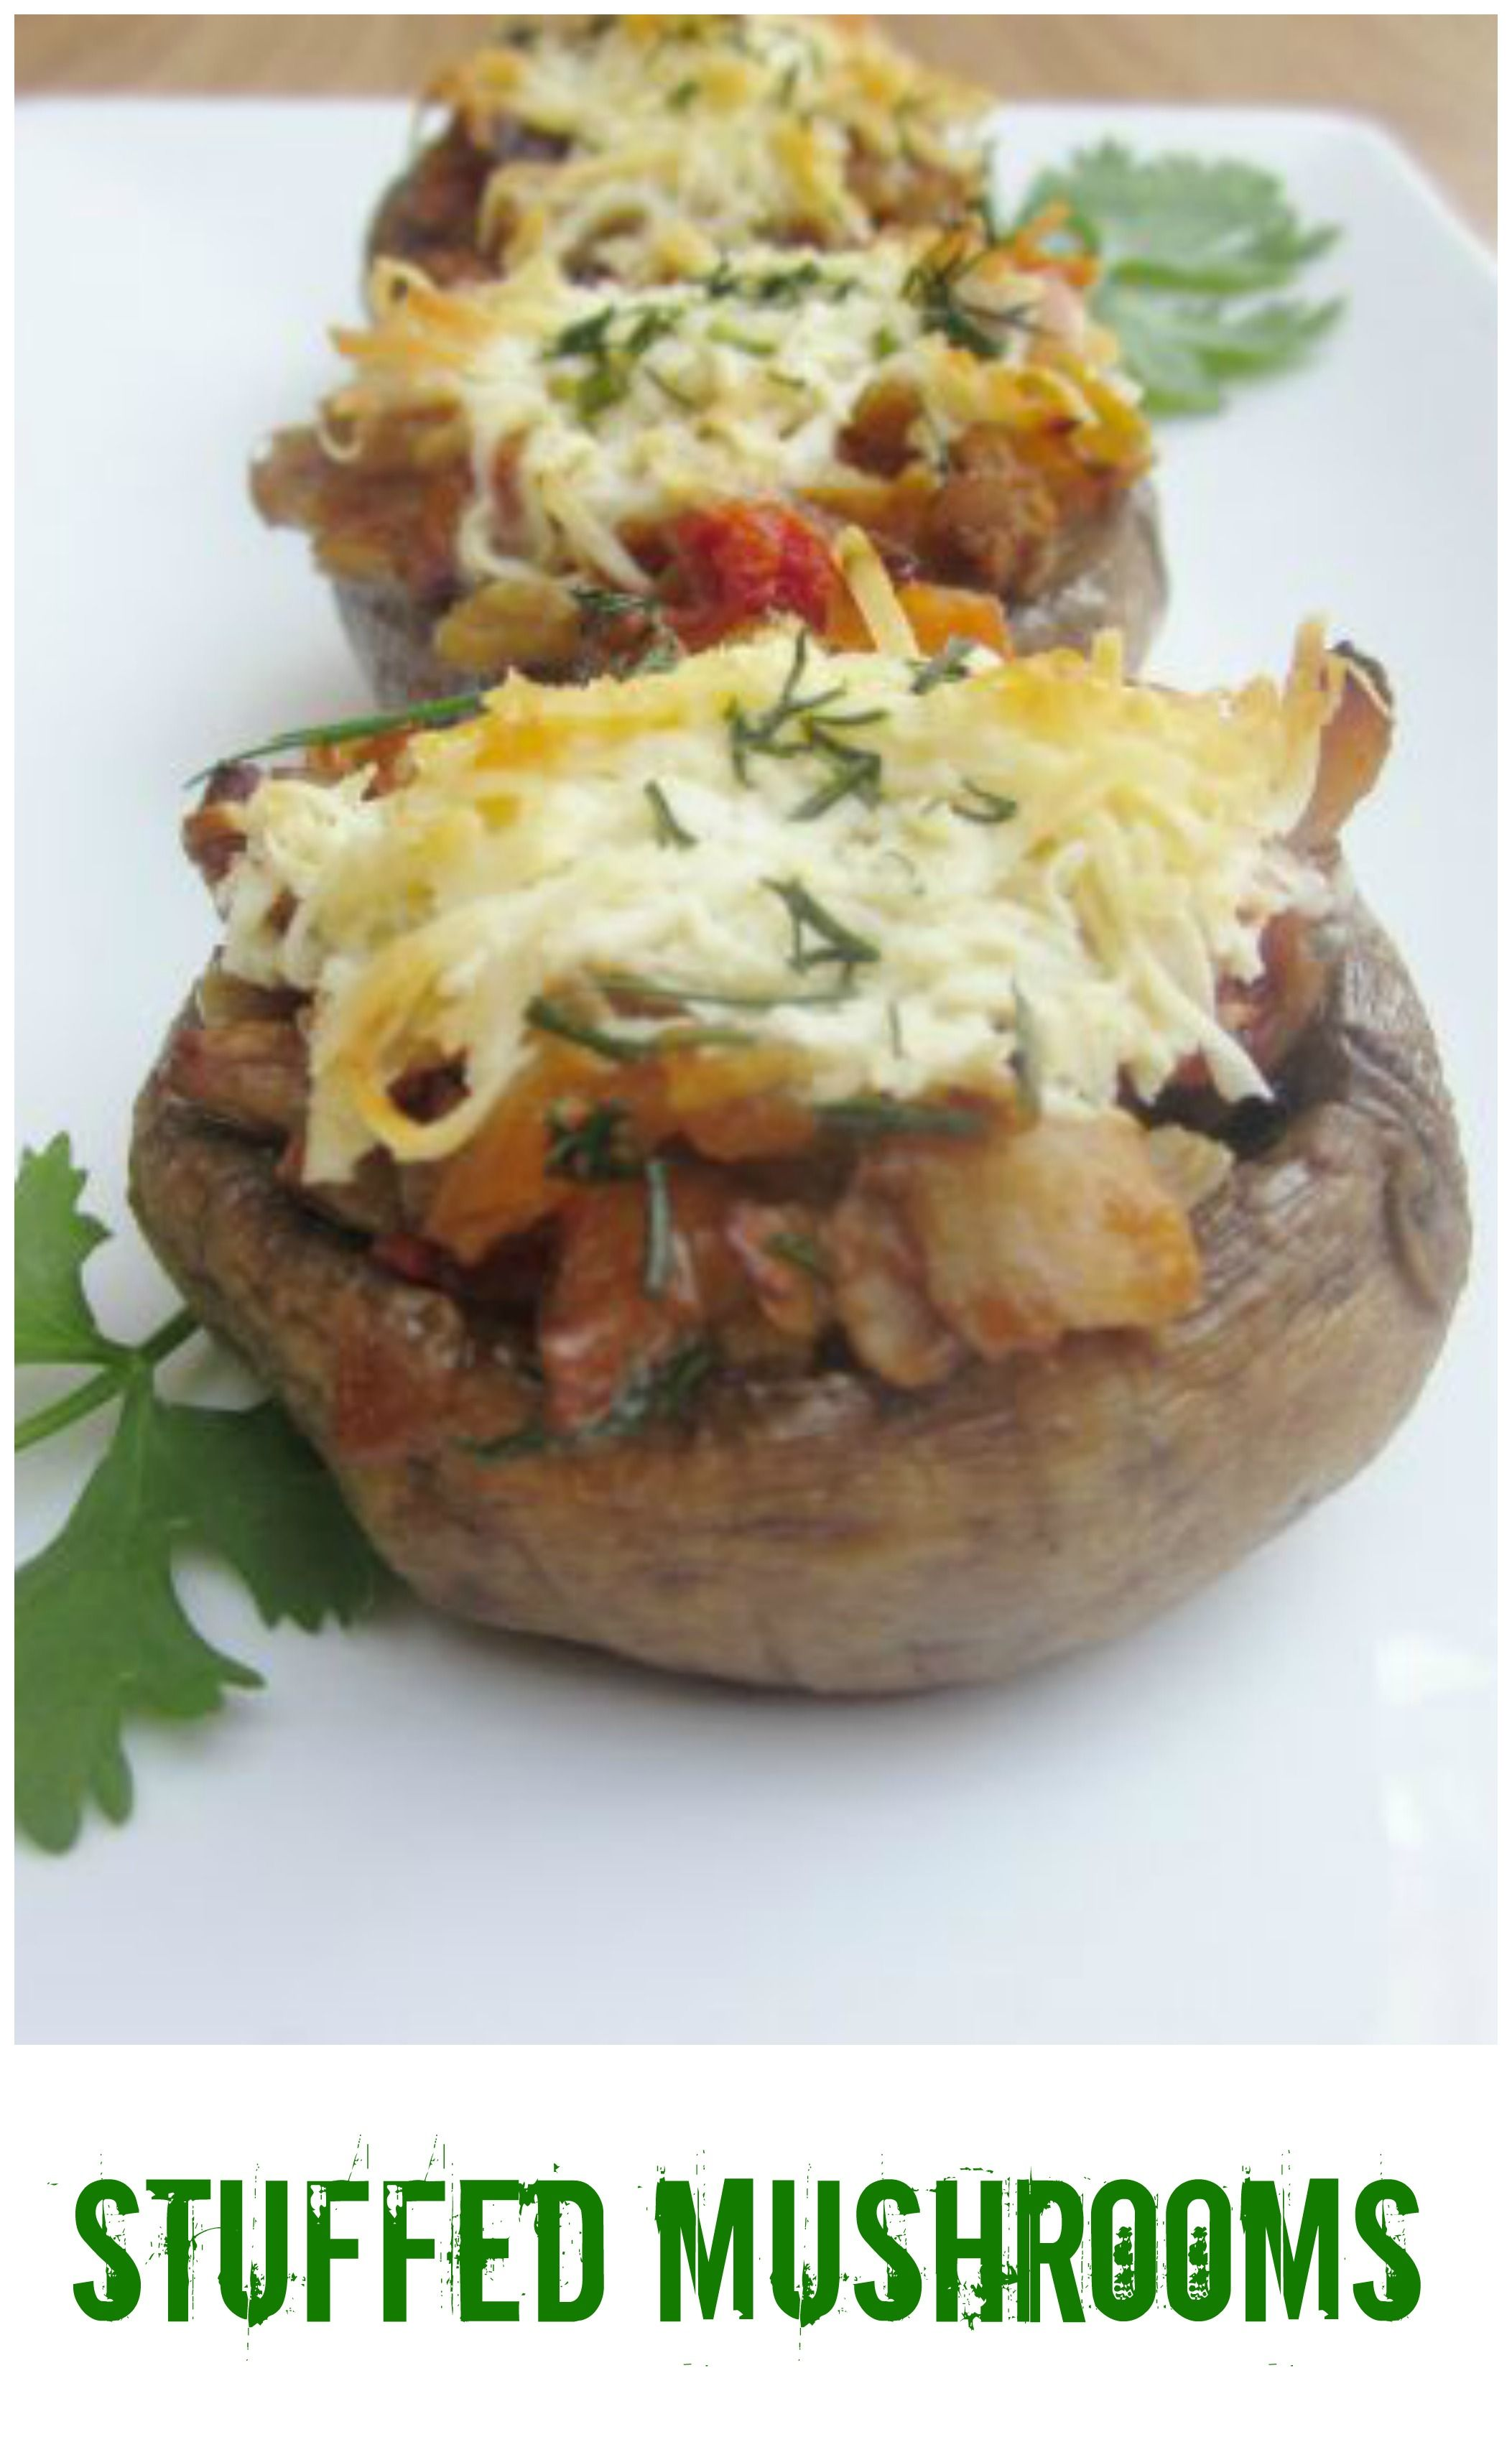 Stuffed mushrooms are a fabulous appetizer for any